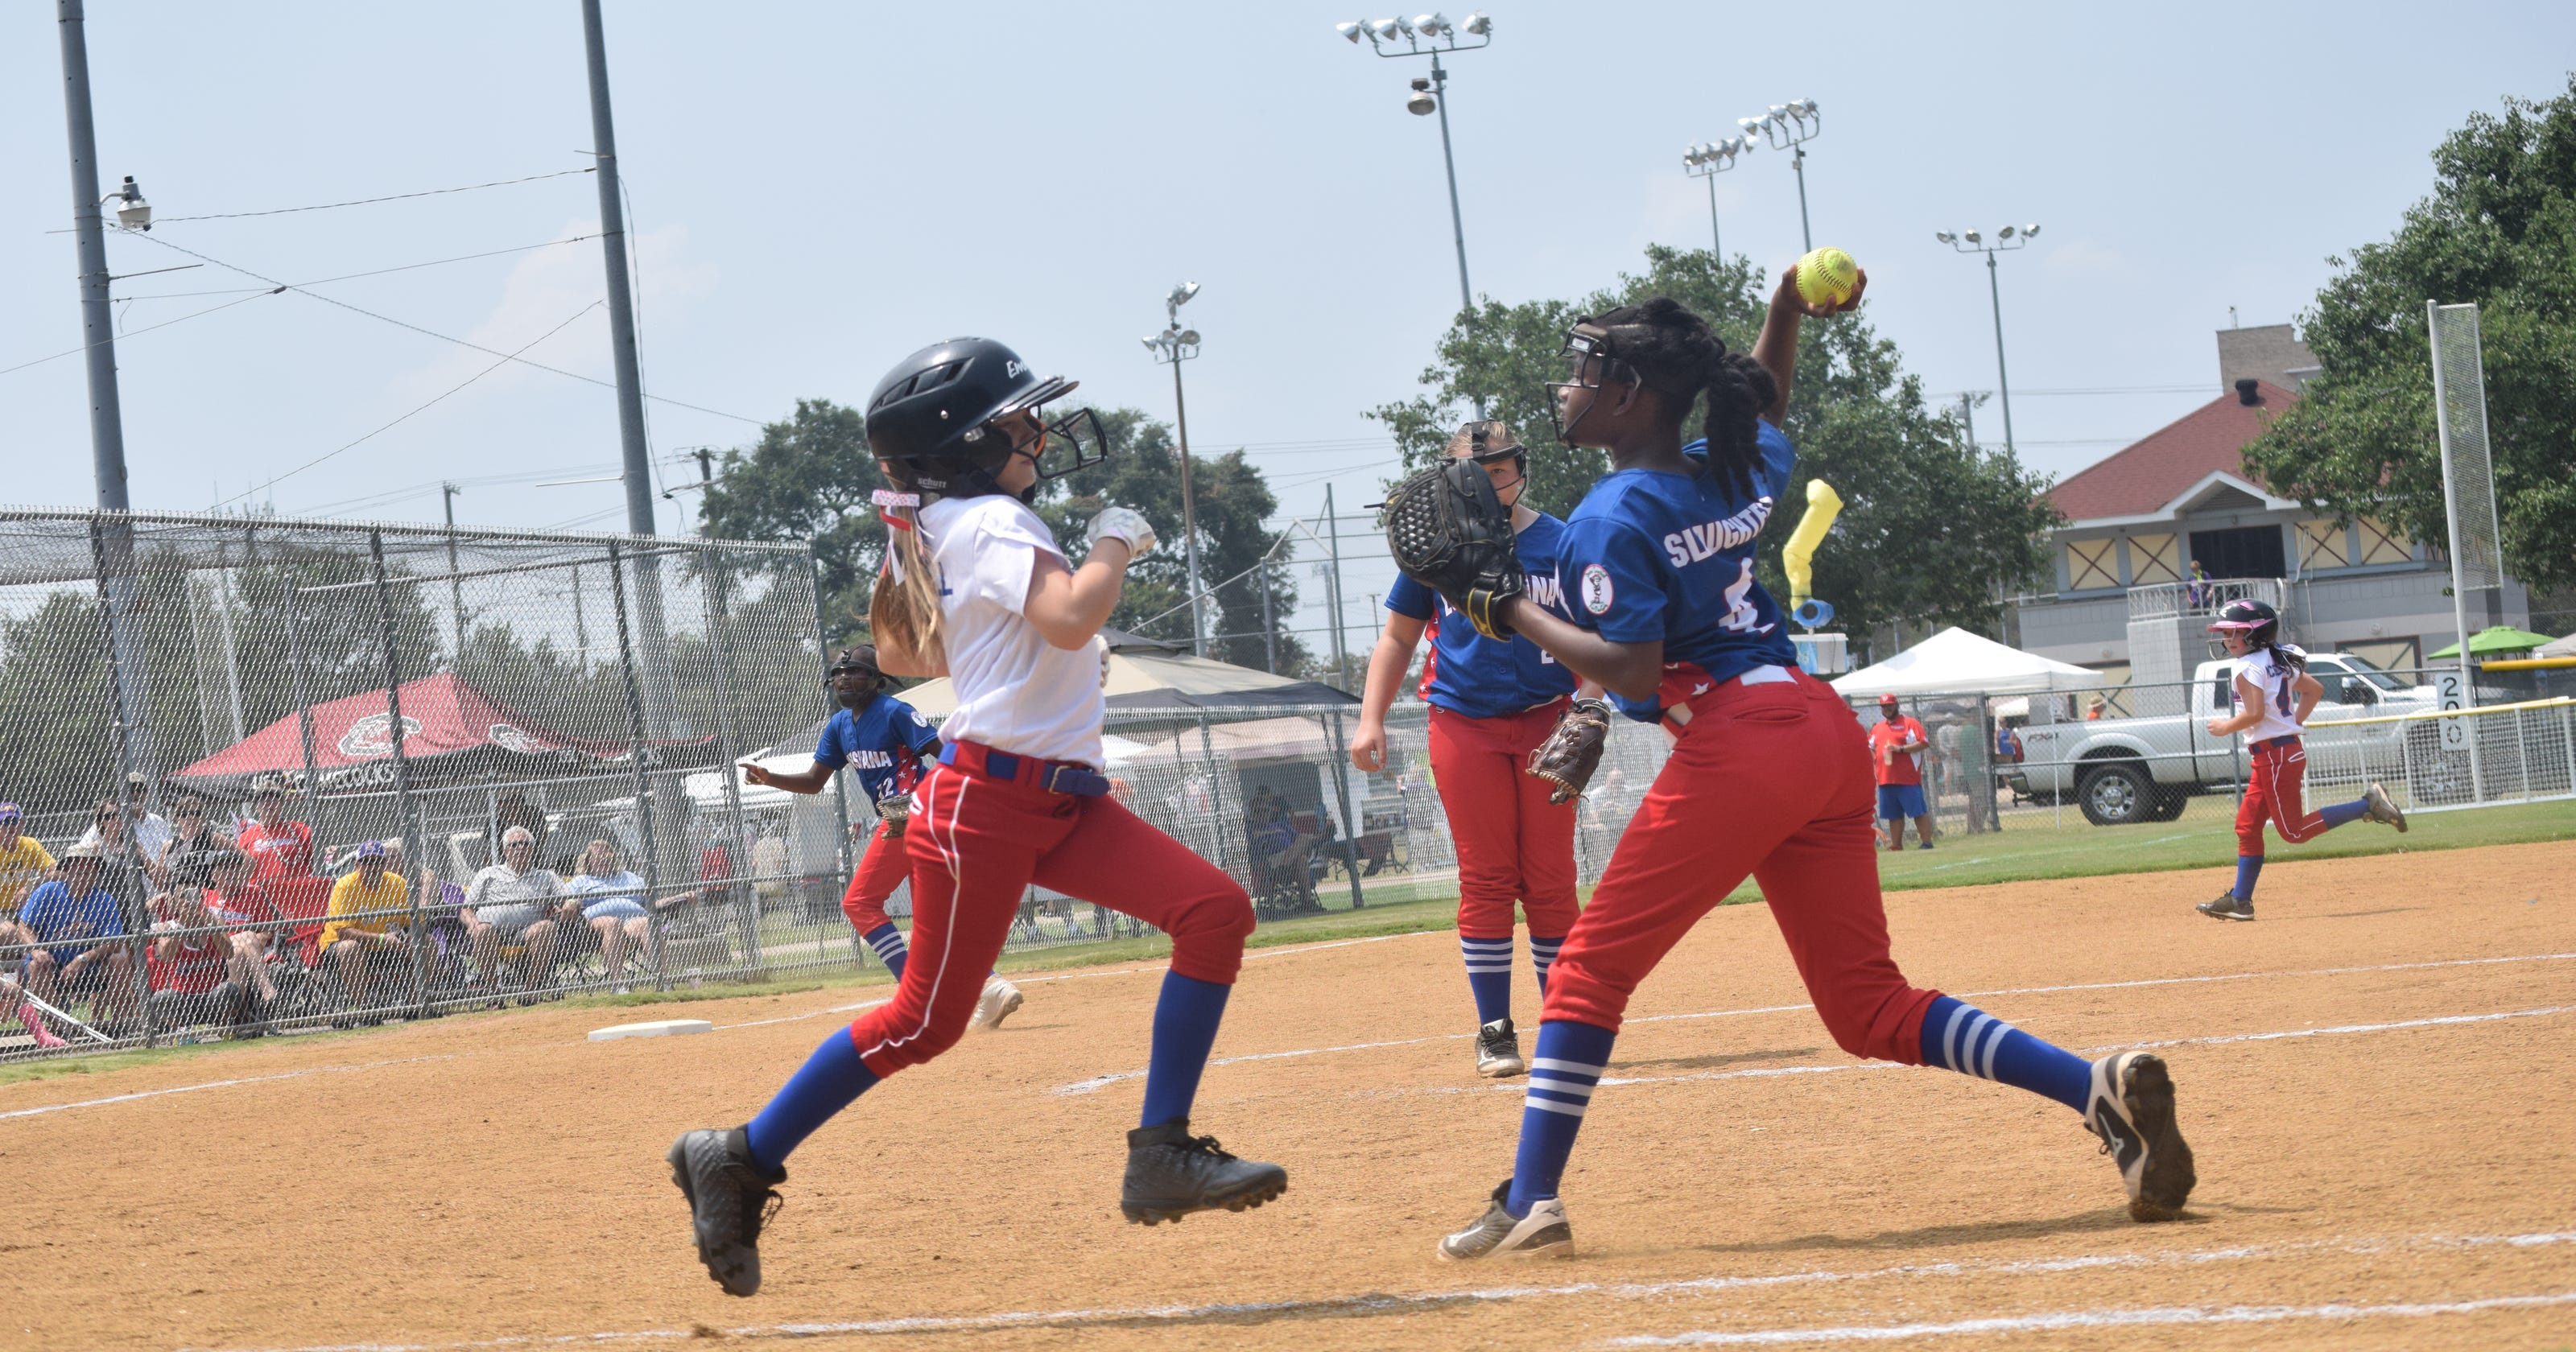 Dixie Softball World Series: Day 1 highlighted by a thriller between